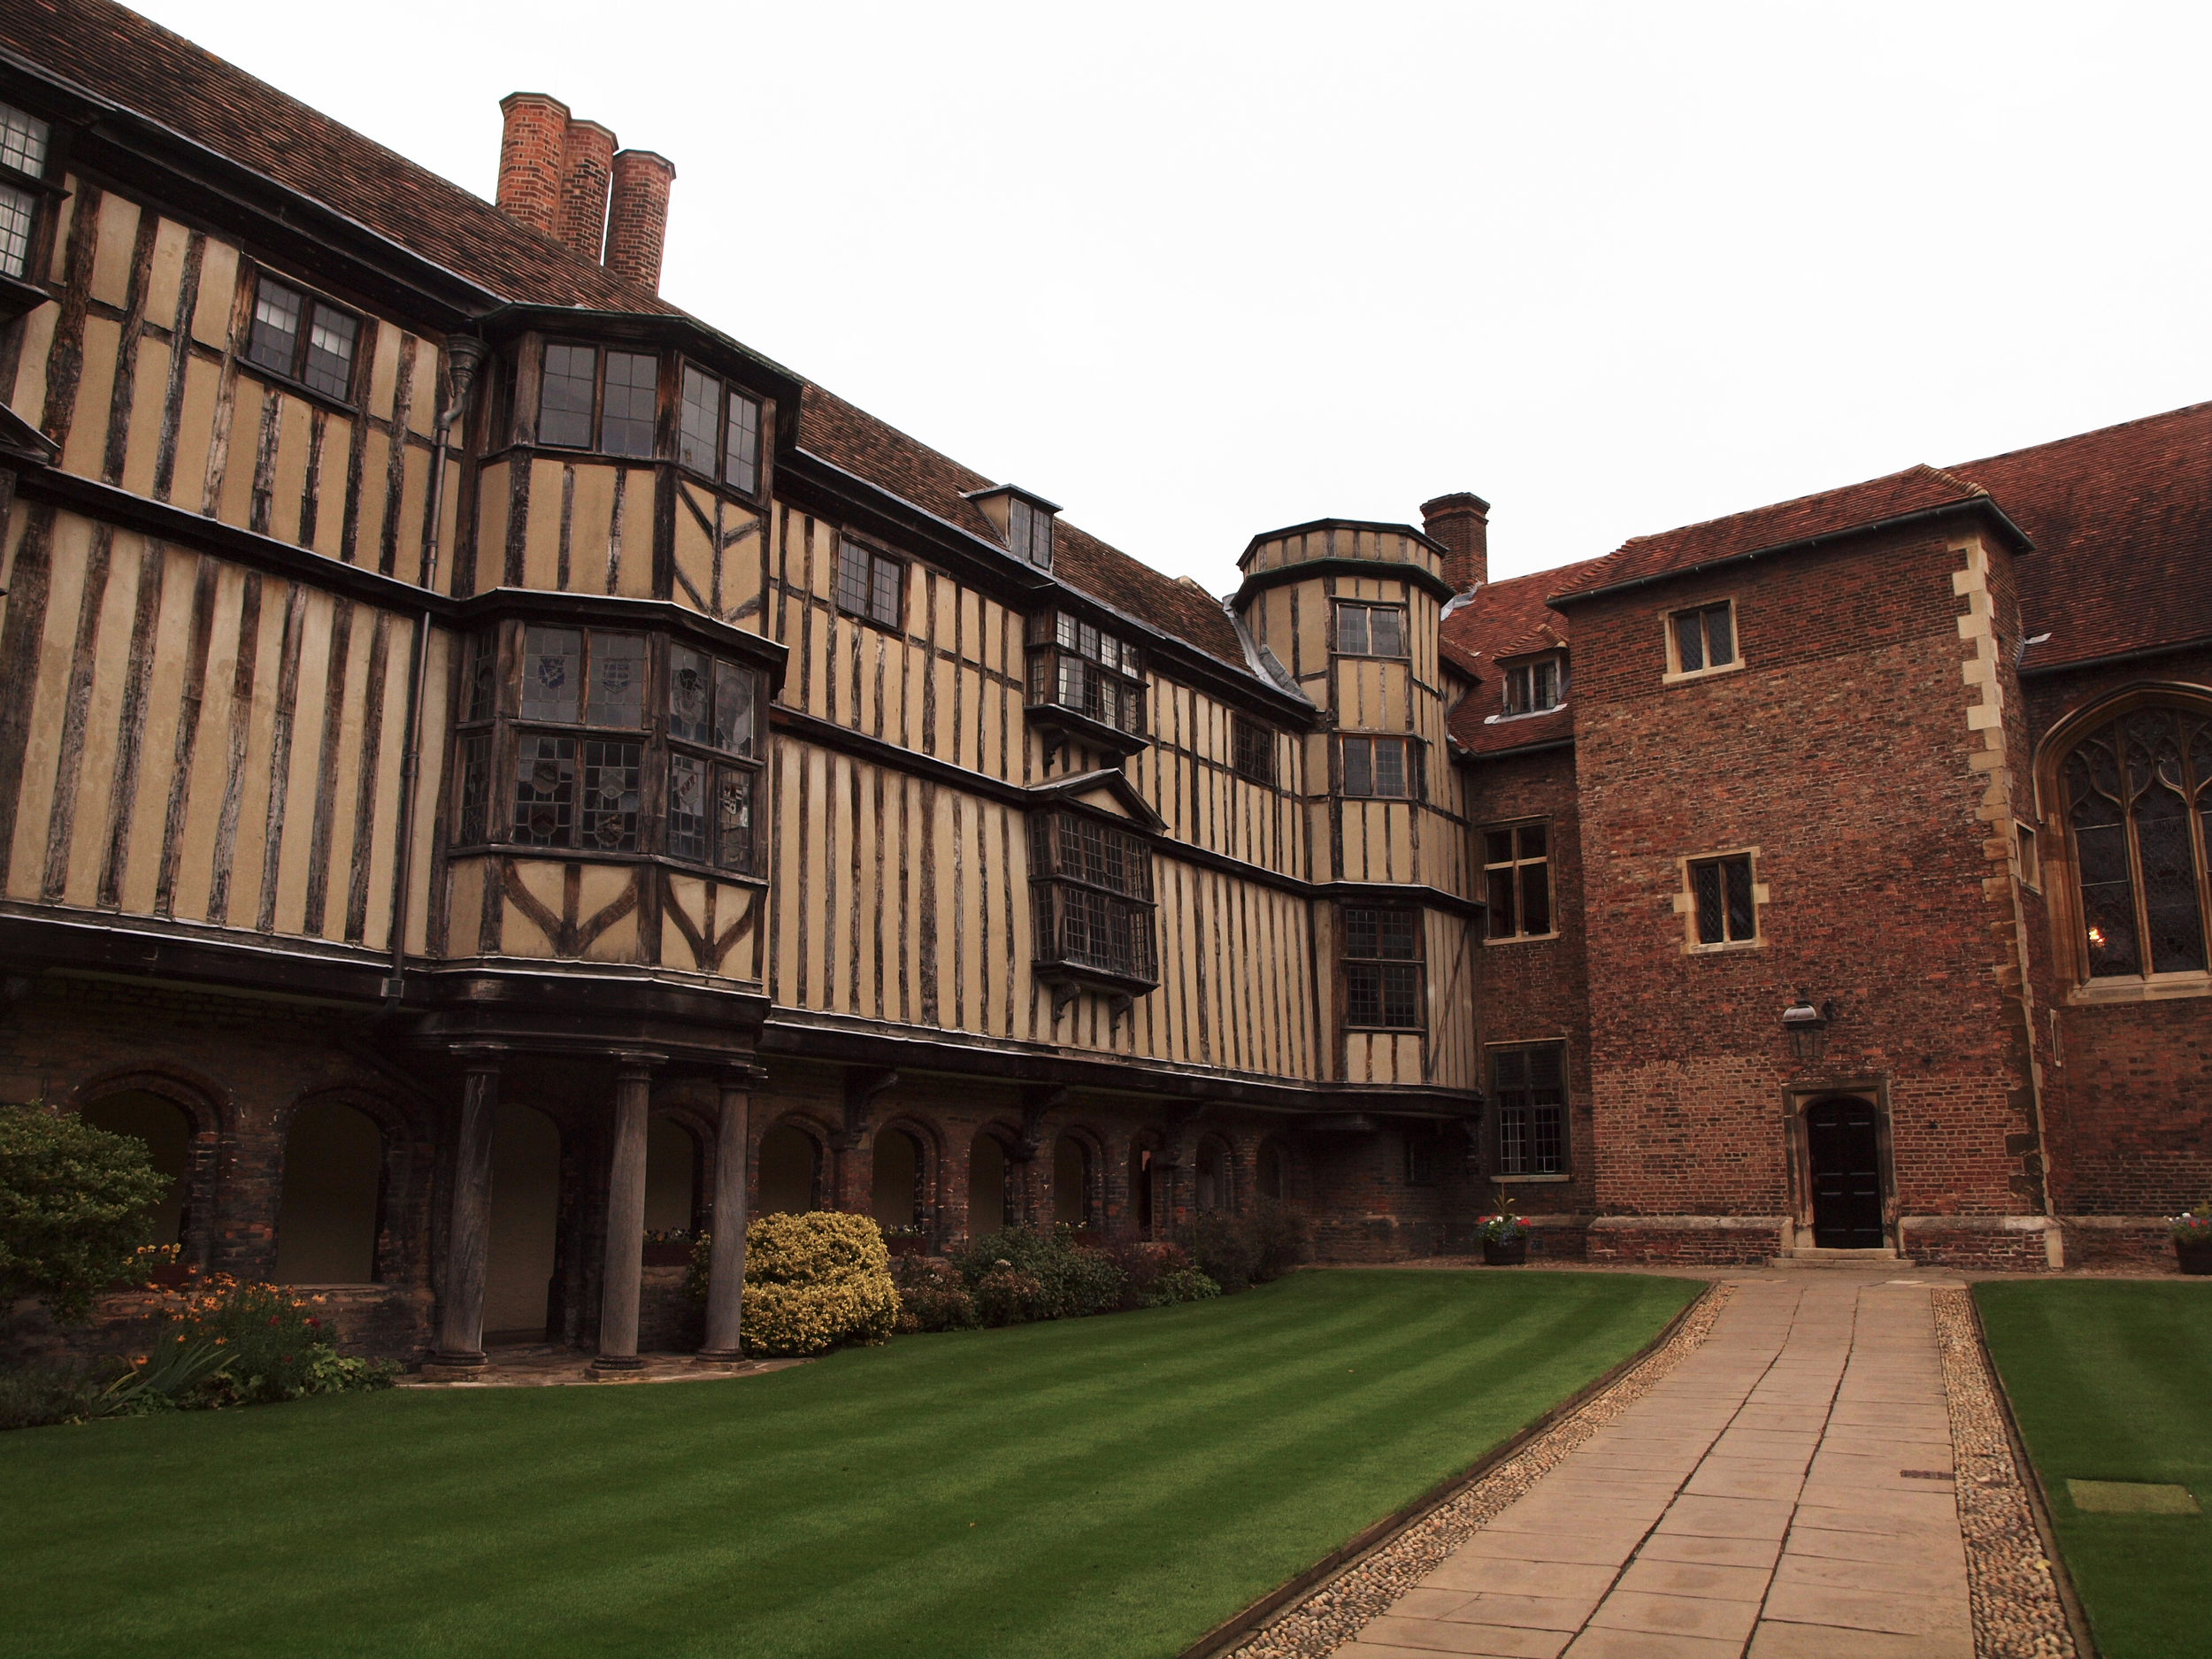 Queen's College Cloister Court-clash of different architectural styles